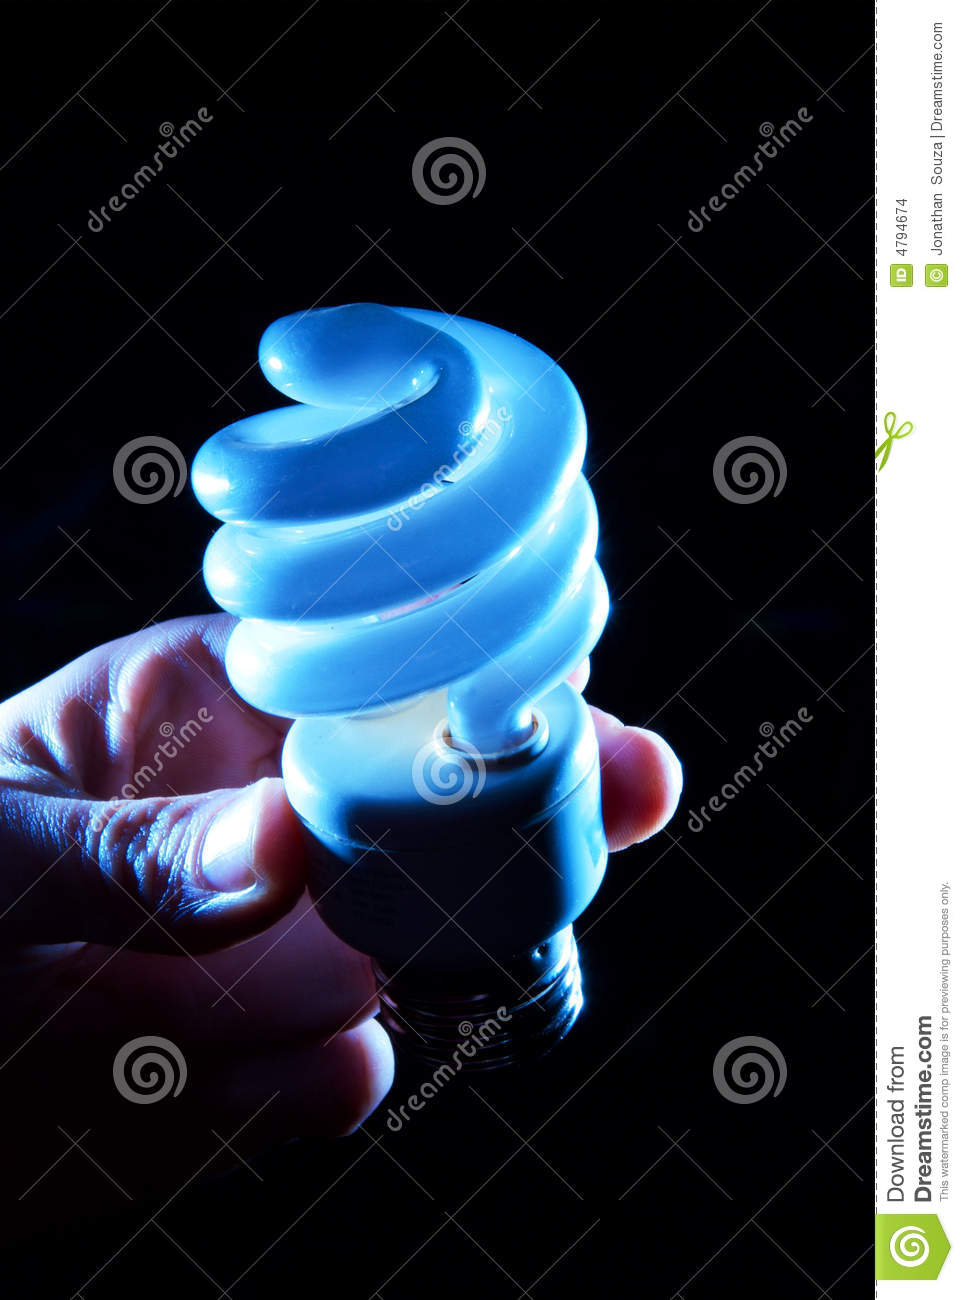 Hand Holding A Compact Fluorescent Light (CFL) Royalty ...